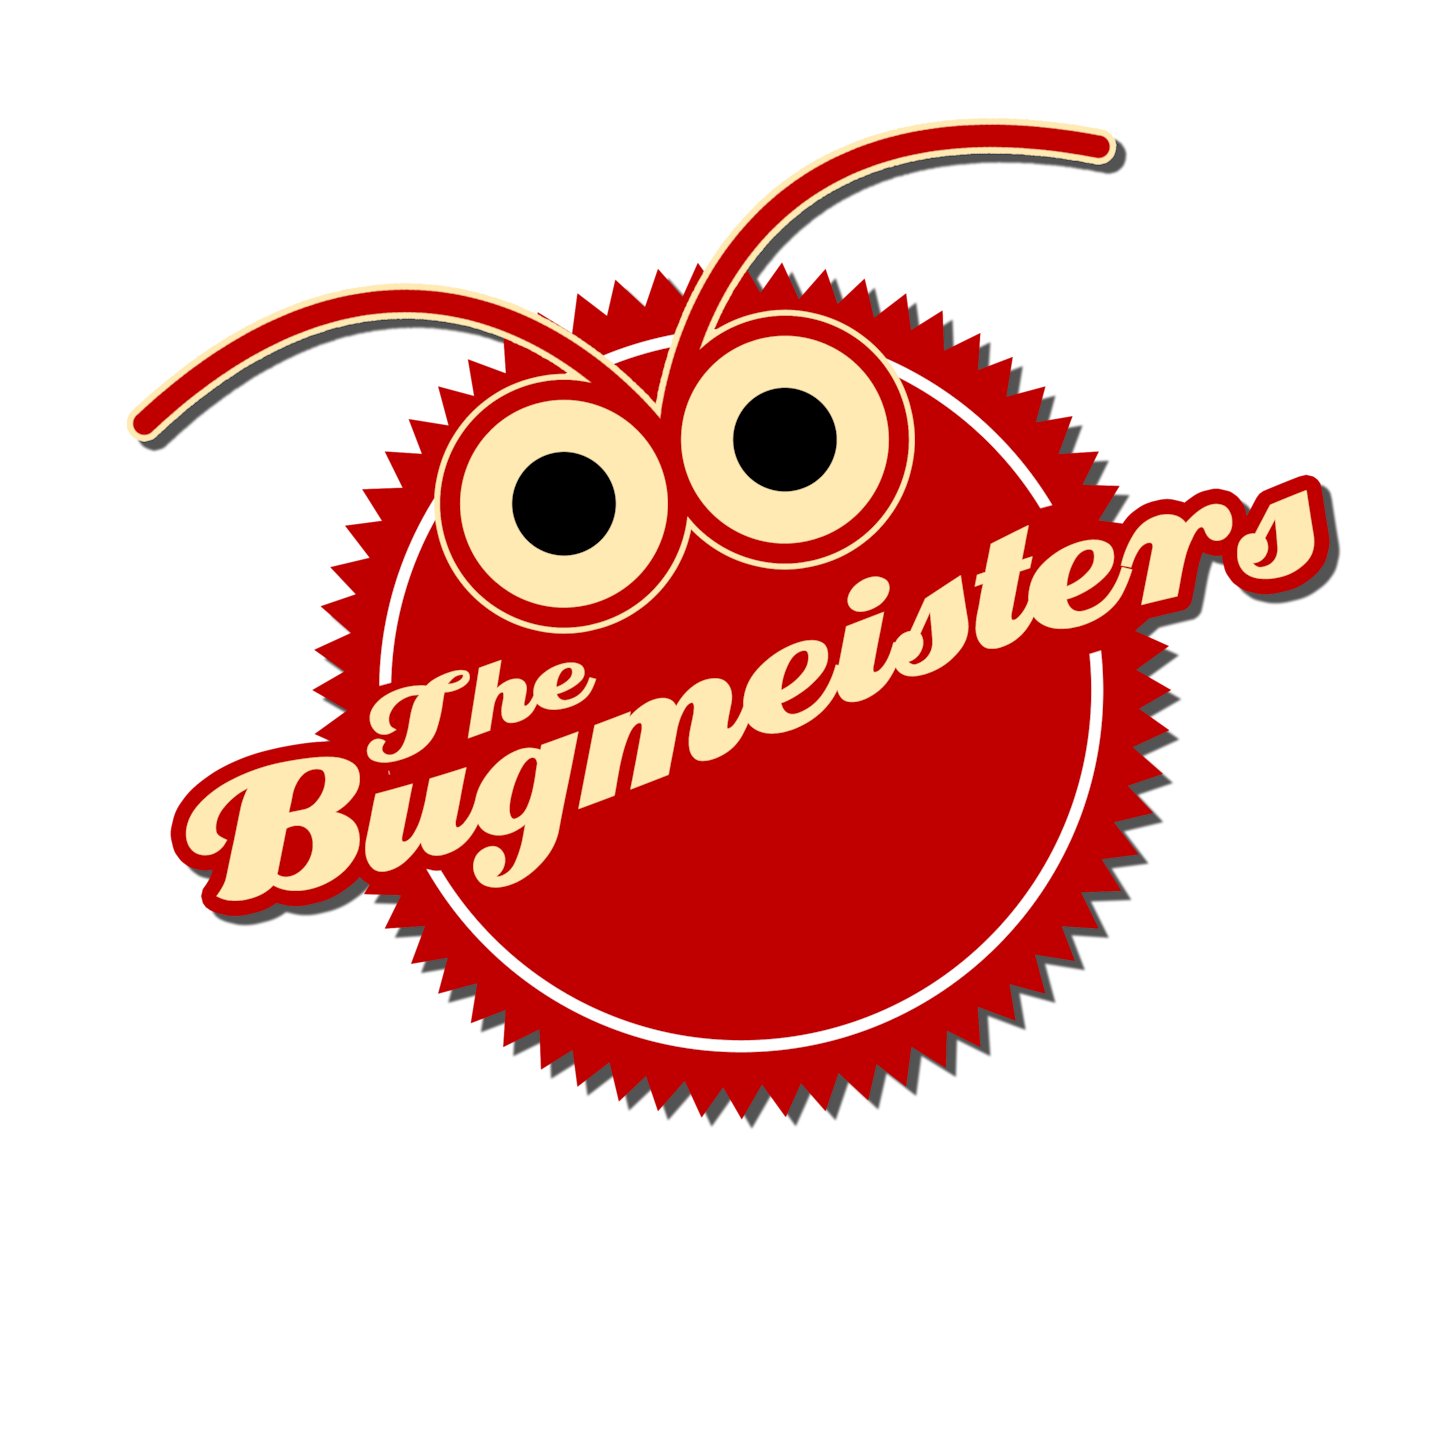 BugMeisters of Household Termite & Pest Control